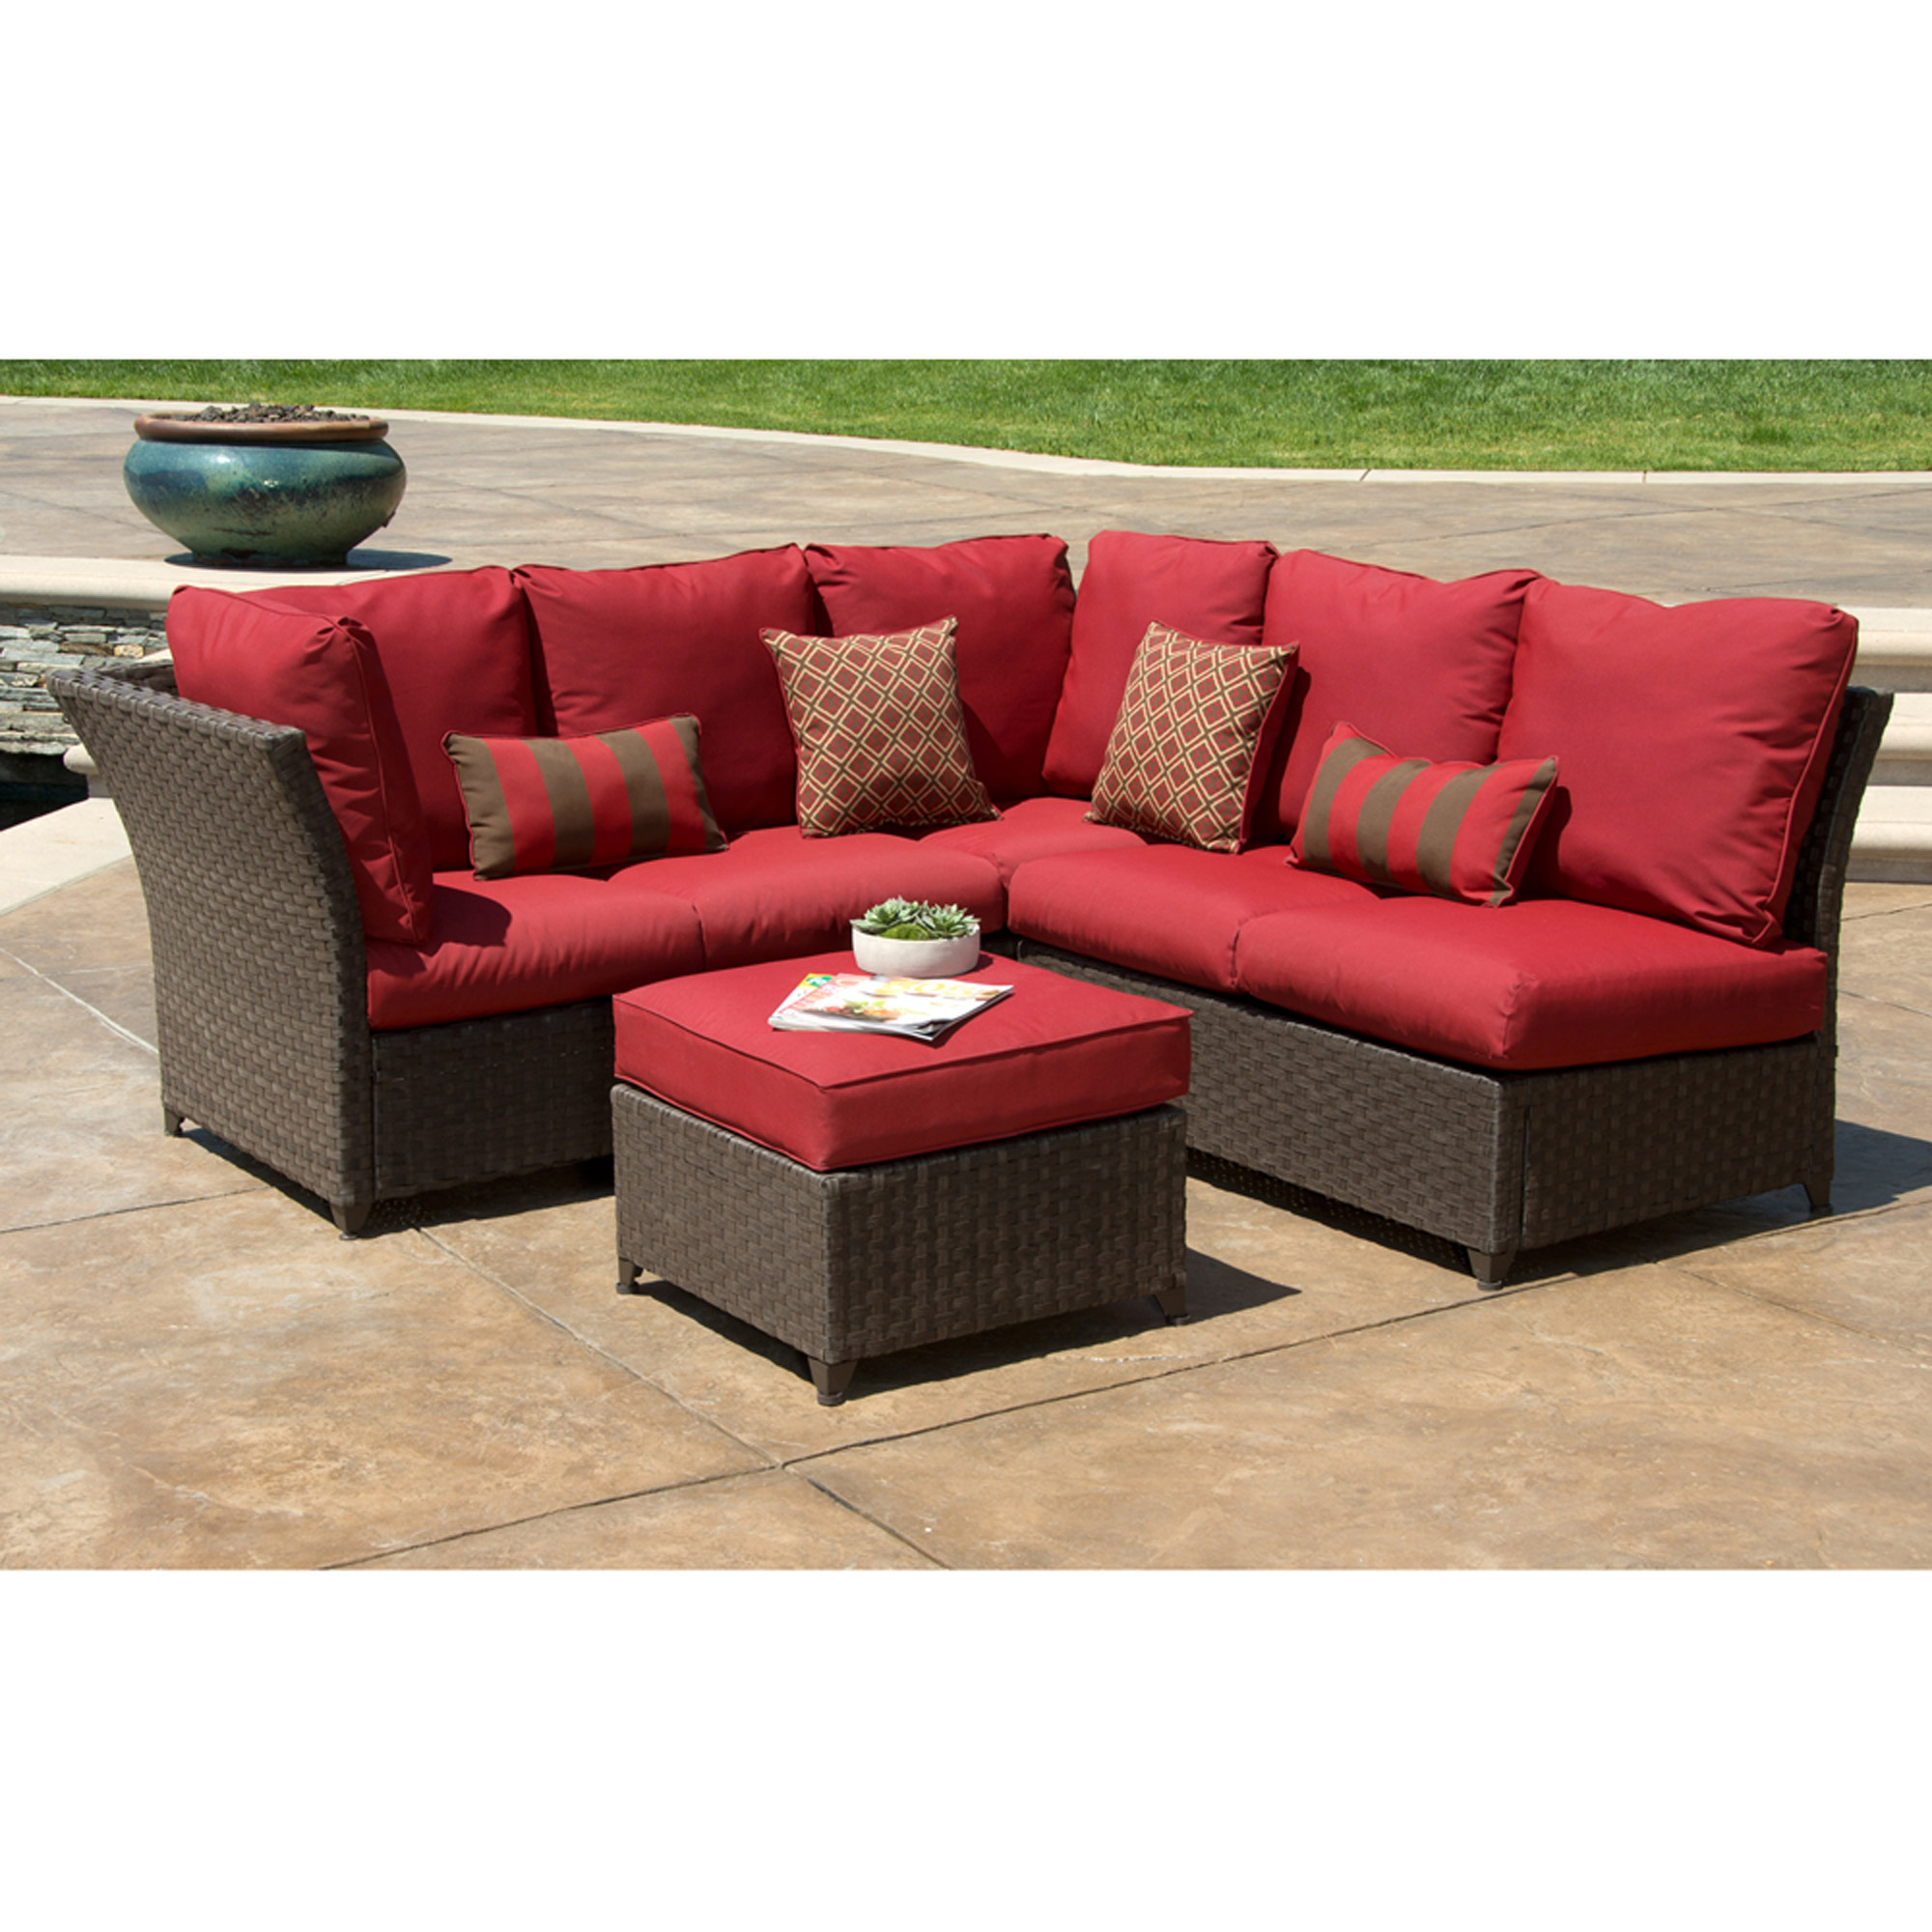 decorating rush better set sectional homes design and of valley sofa outdoor ideas furniture piece gardens patio